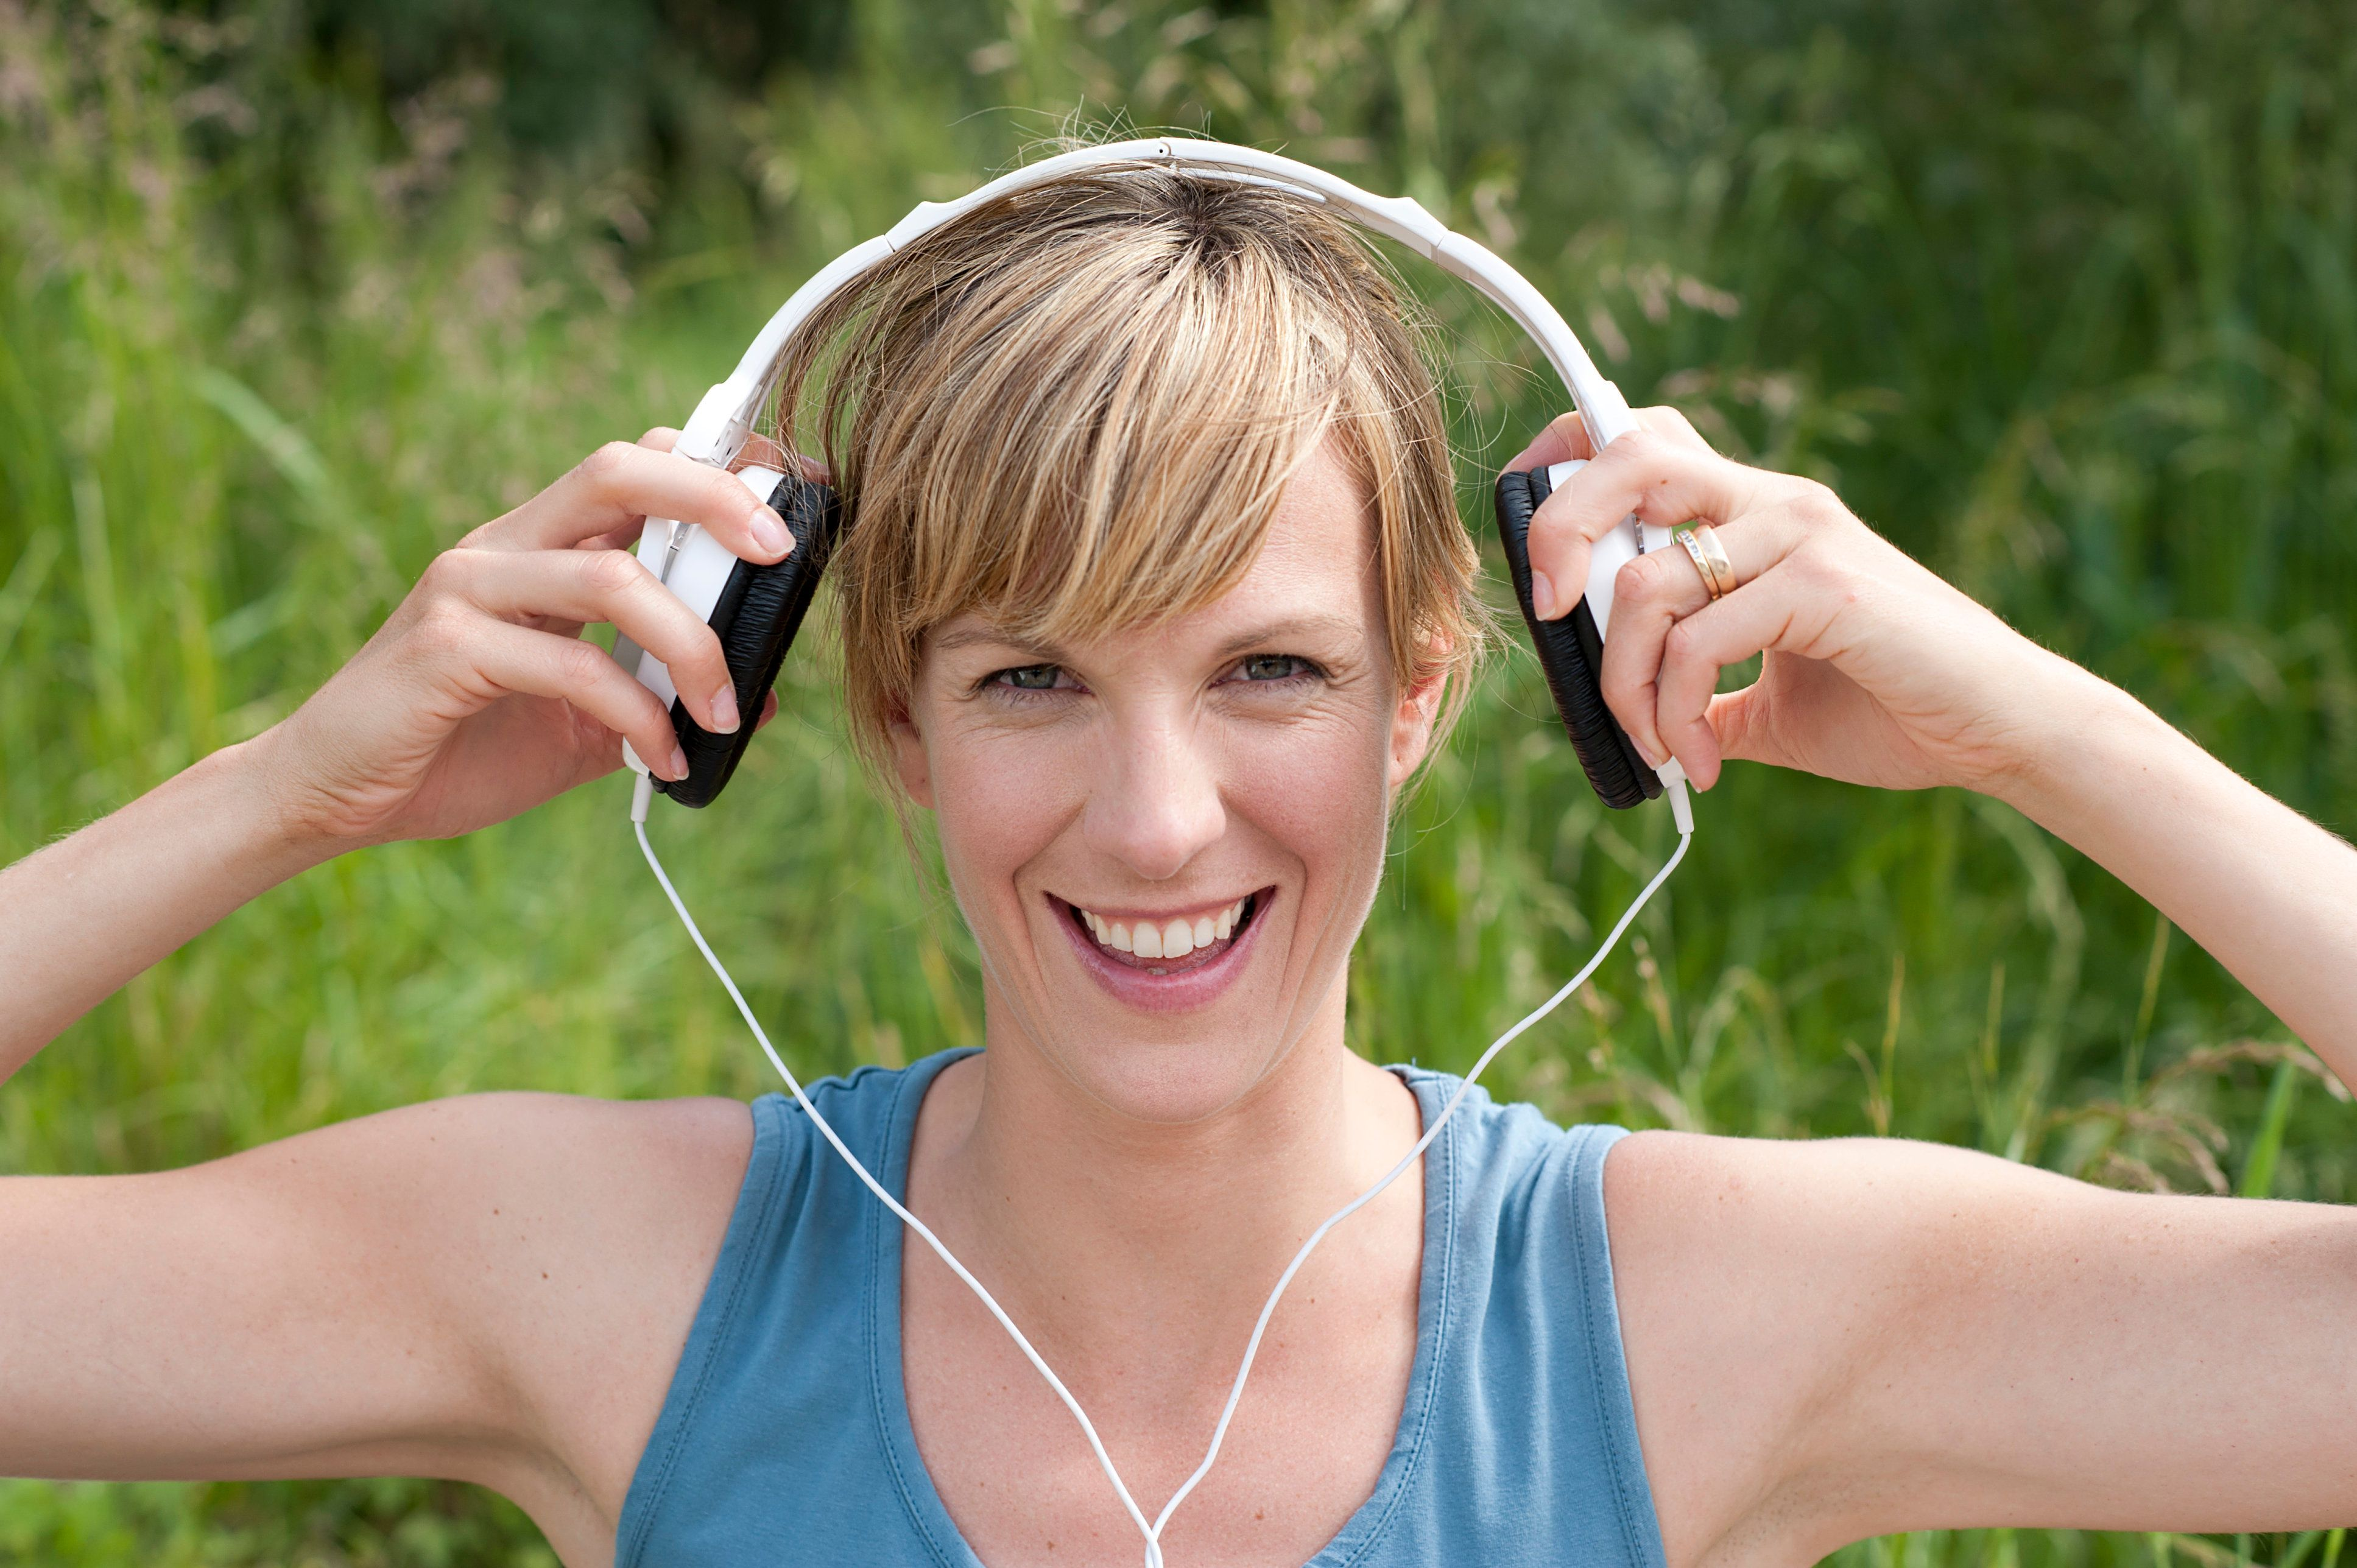 You'll have a better workout if you listen to music while exercising, scientists say.